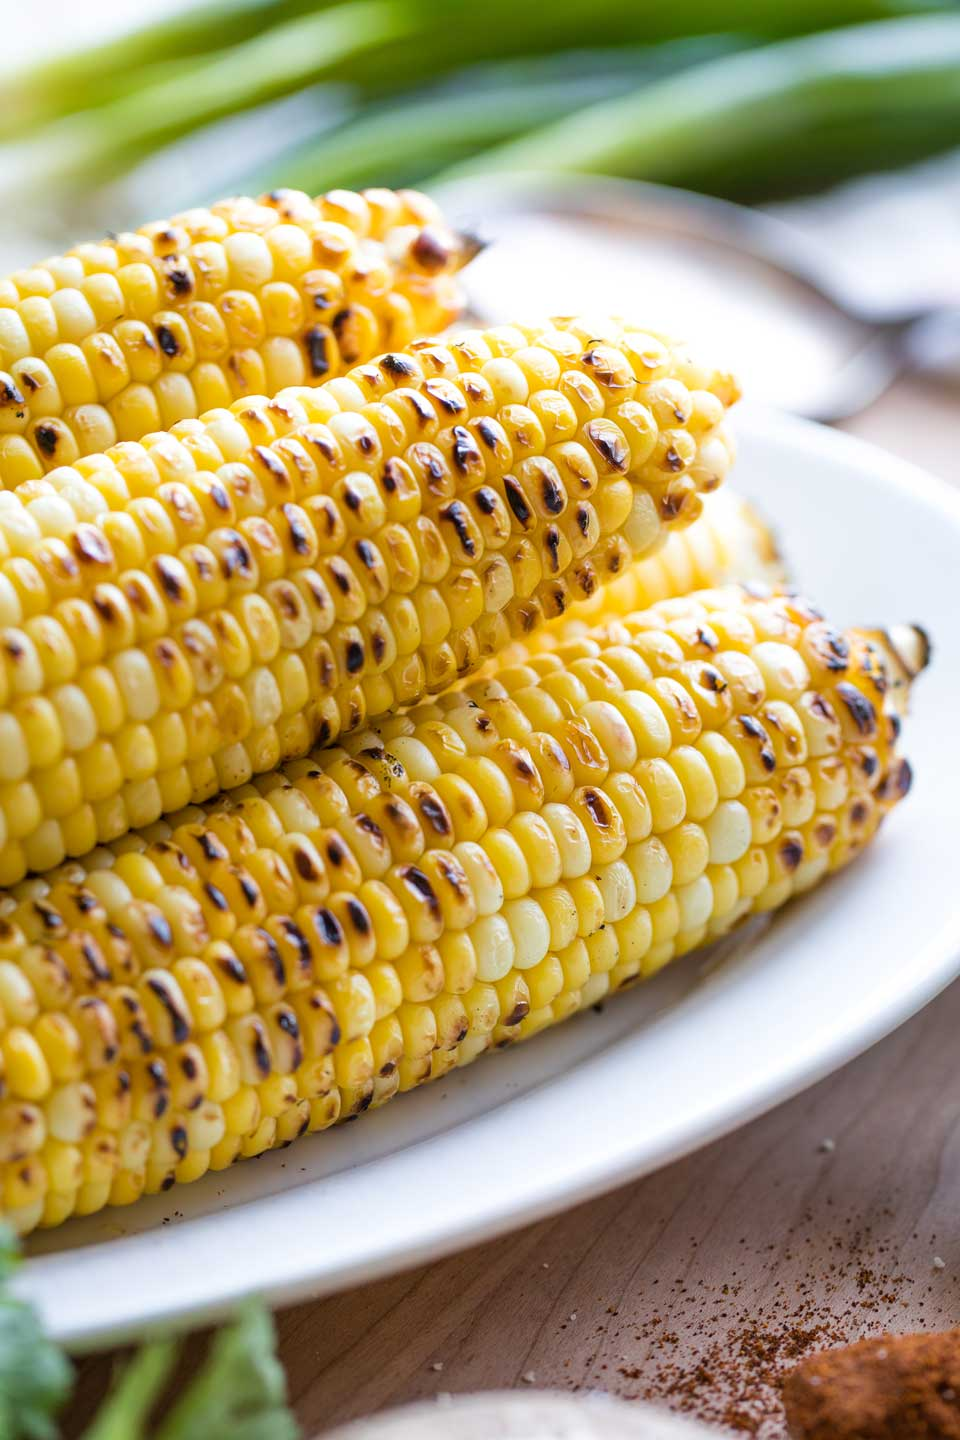 Several ears of grilled corn on a white platter, with other salad ingredients at the phot's edges.